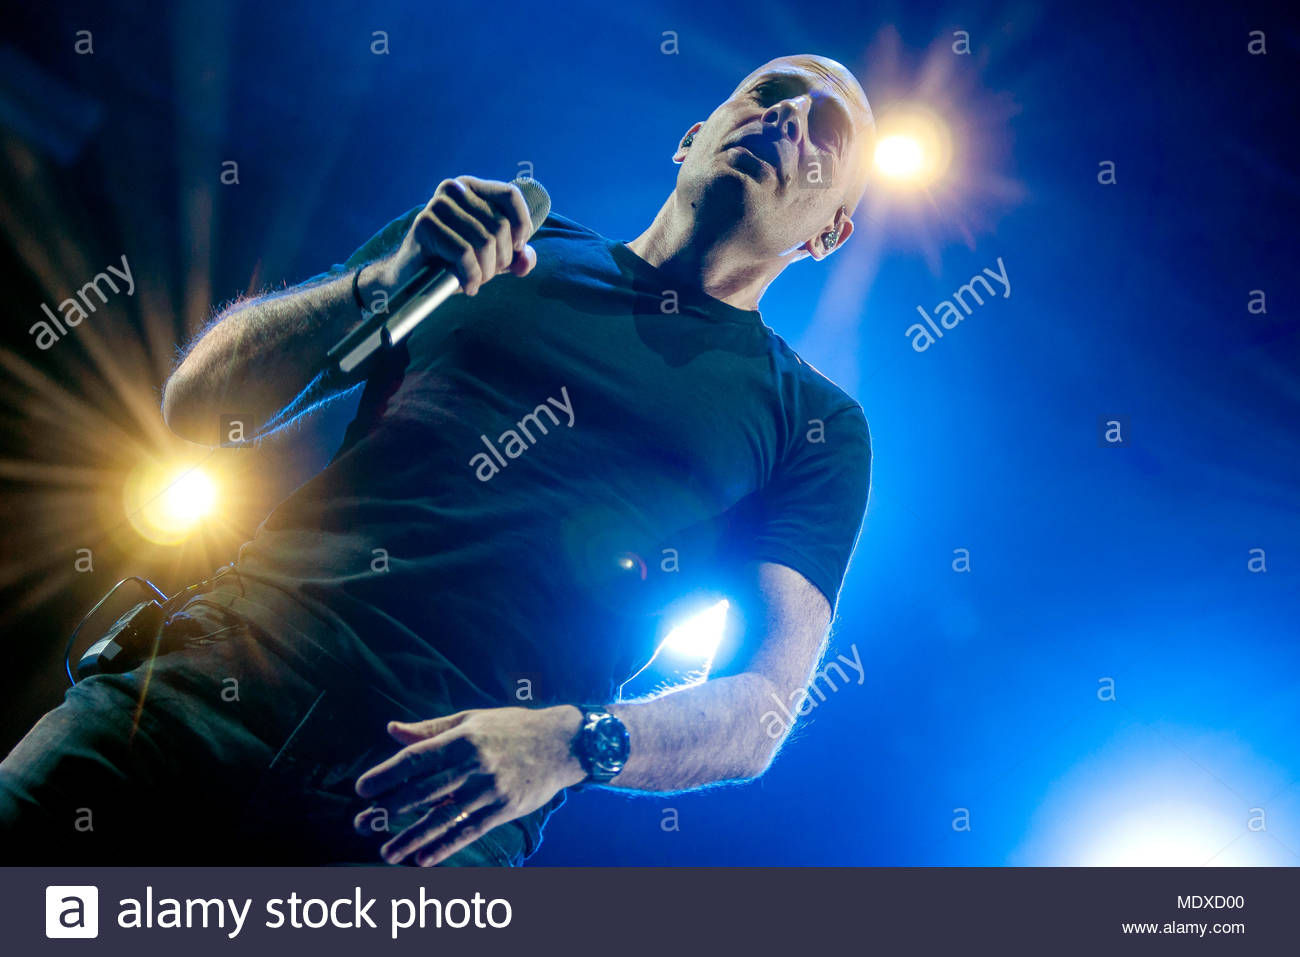 Chamonix, France. 20th April 2018. IAM (singer Philippe Fragione aka Akhenaton) performing live at the first edition of MUSILAC Mont-Blanc music festival in Chamonix (France) - 20 April 2018 Credit: Olivier Parent/Alamy Live News - Stock Image